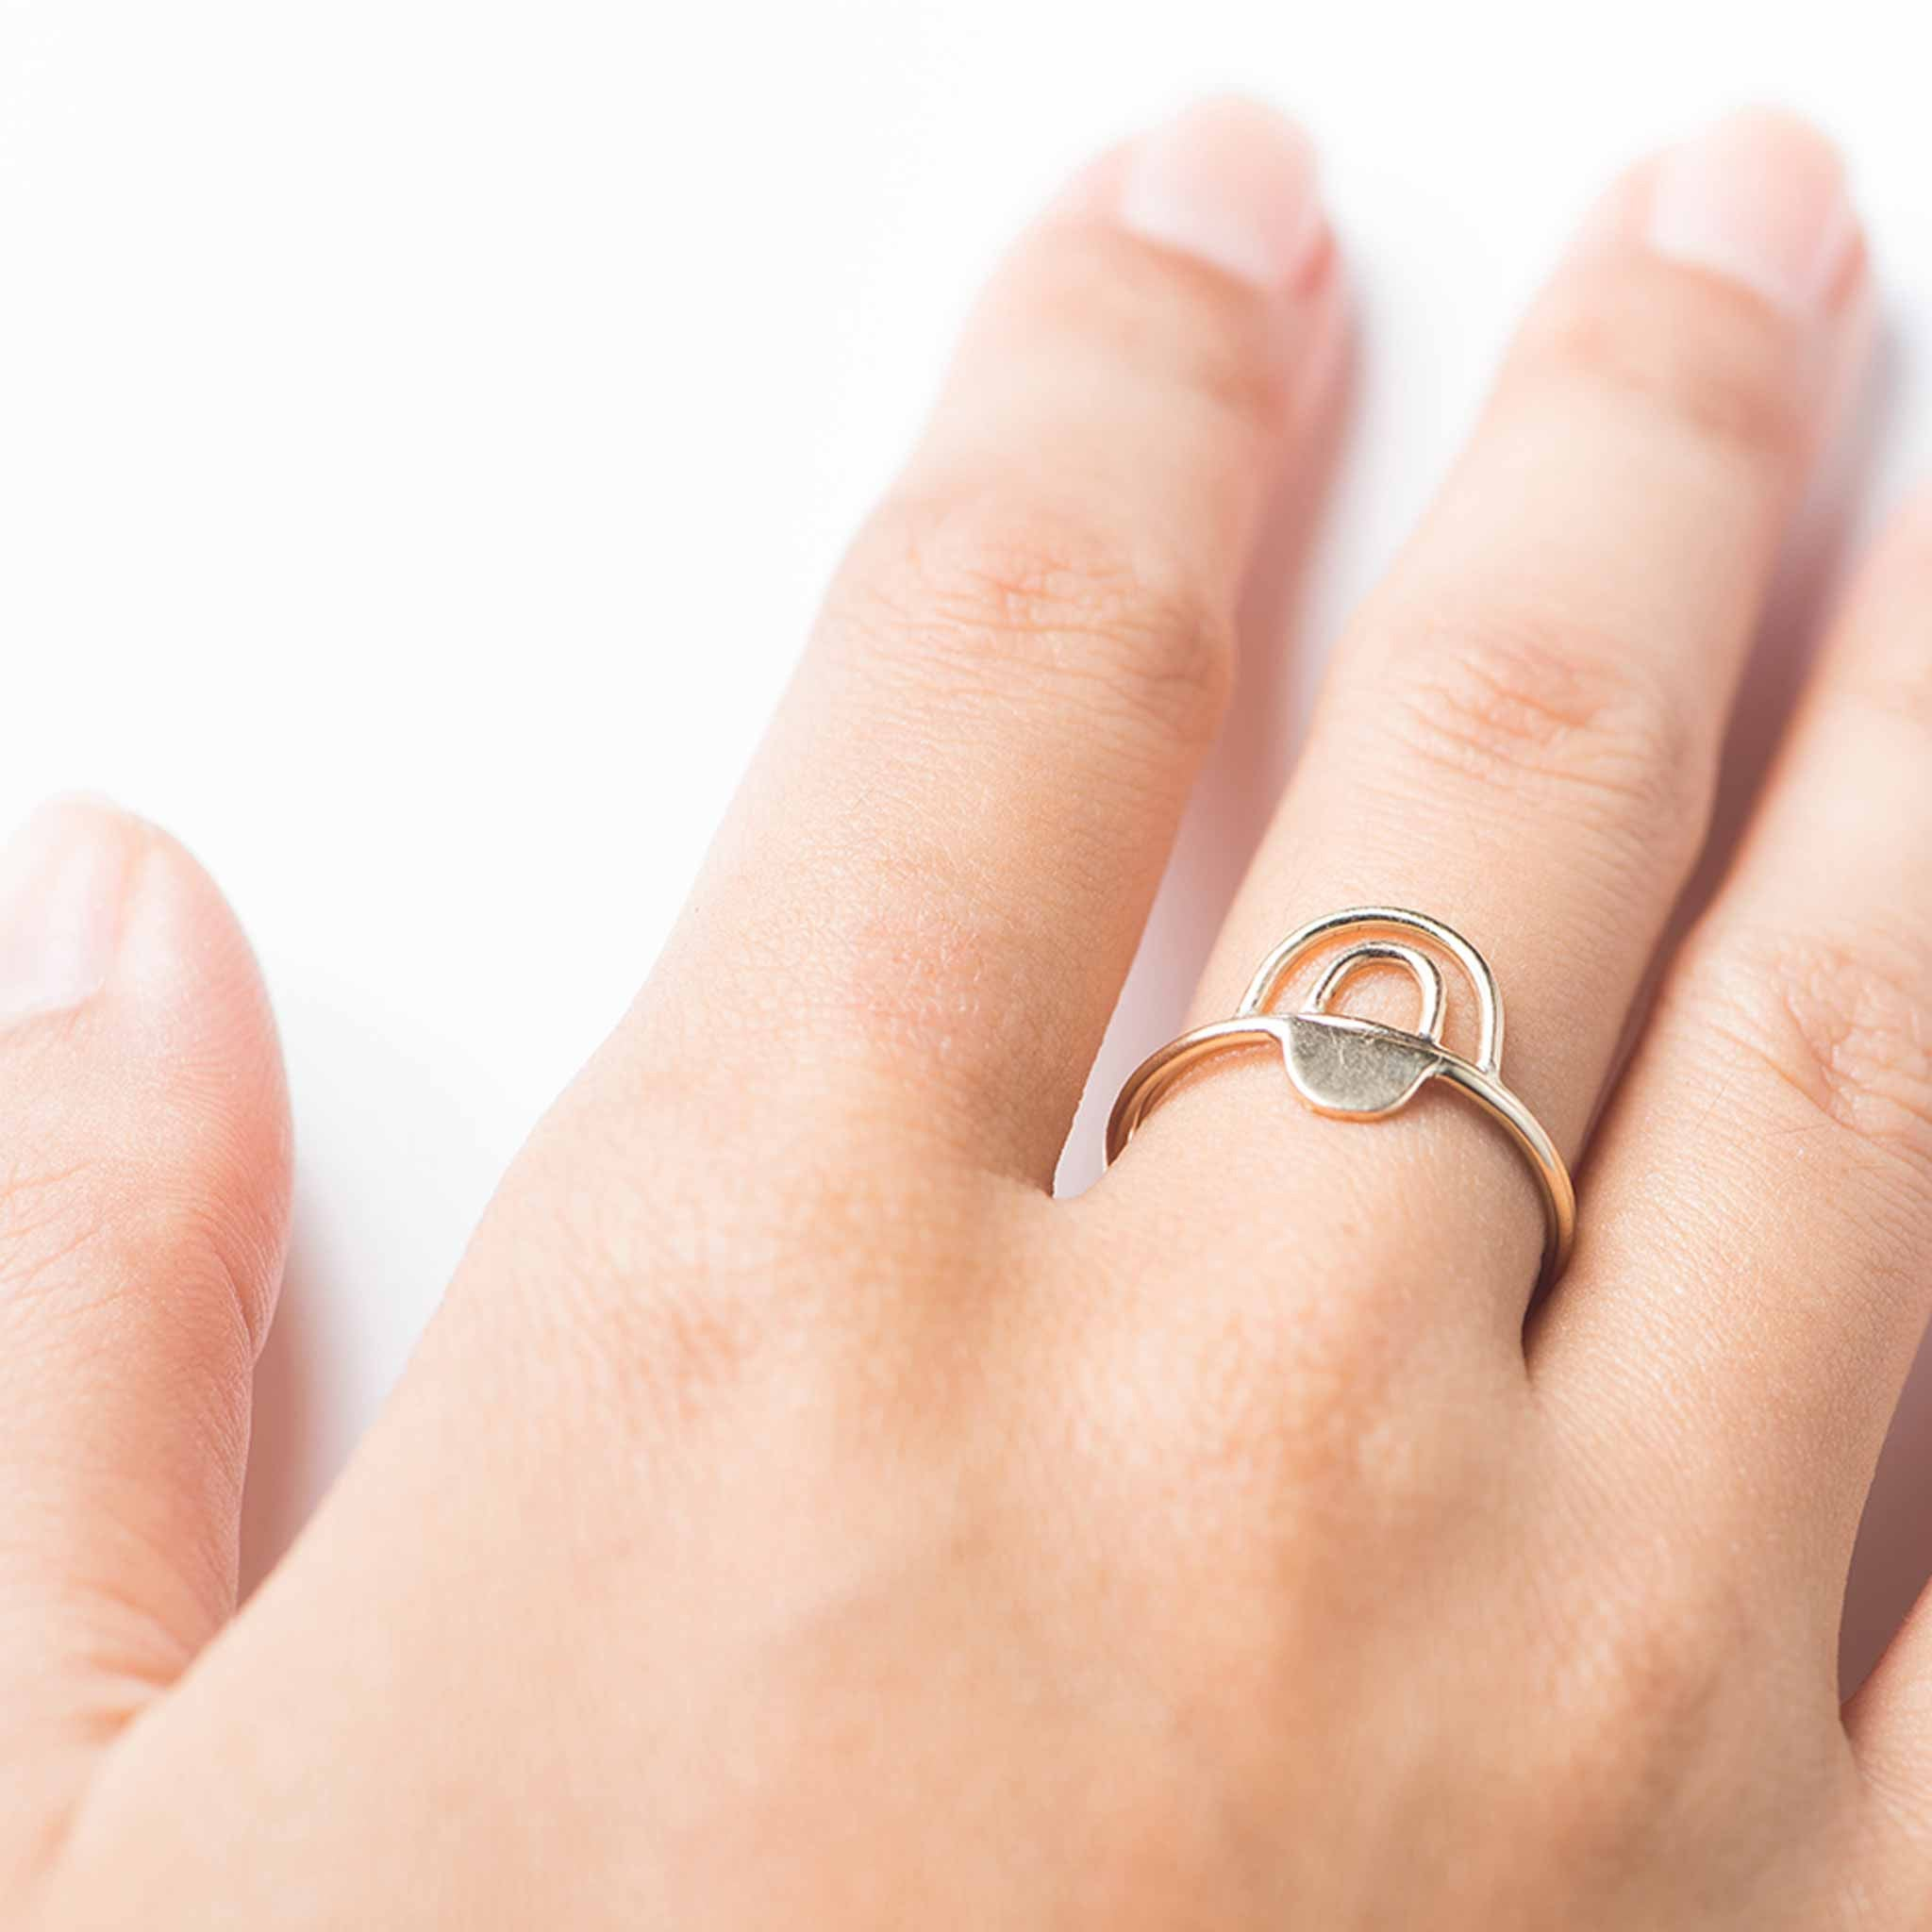 Stacking ring combinations